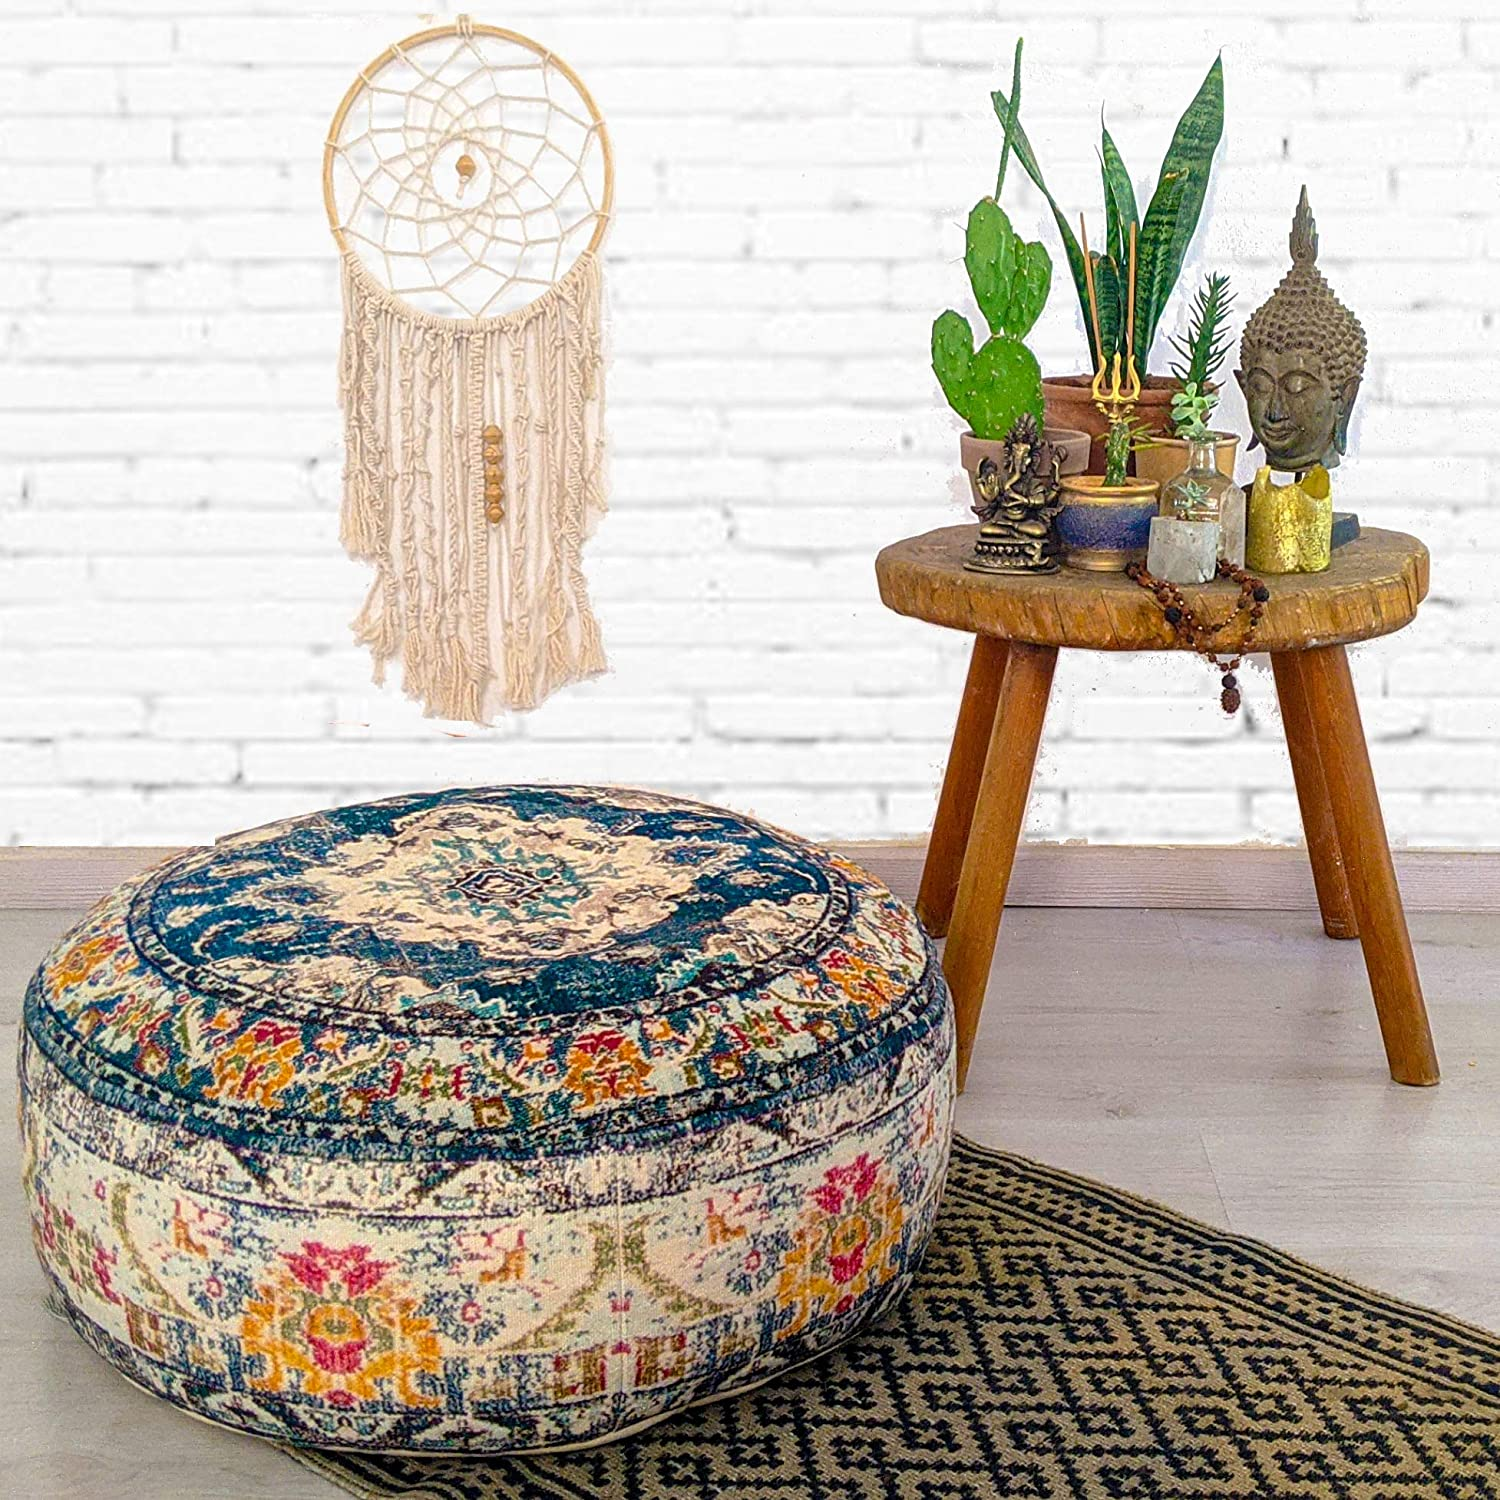 Mandala Life ART Bohemian Yoga Decor Floor Cushion Cover - 24x8 inches - Round Meditation Carpet Pillow Case - Printed Cotton Rug Pouf